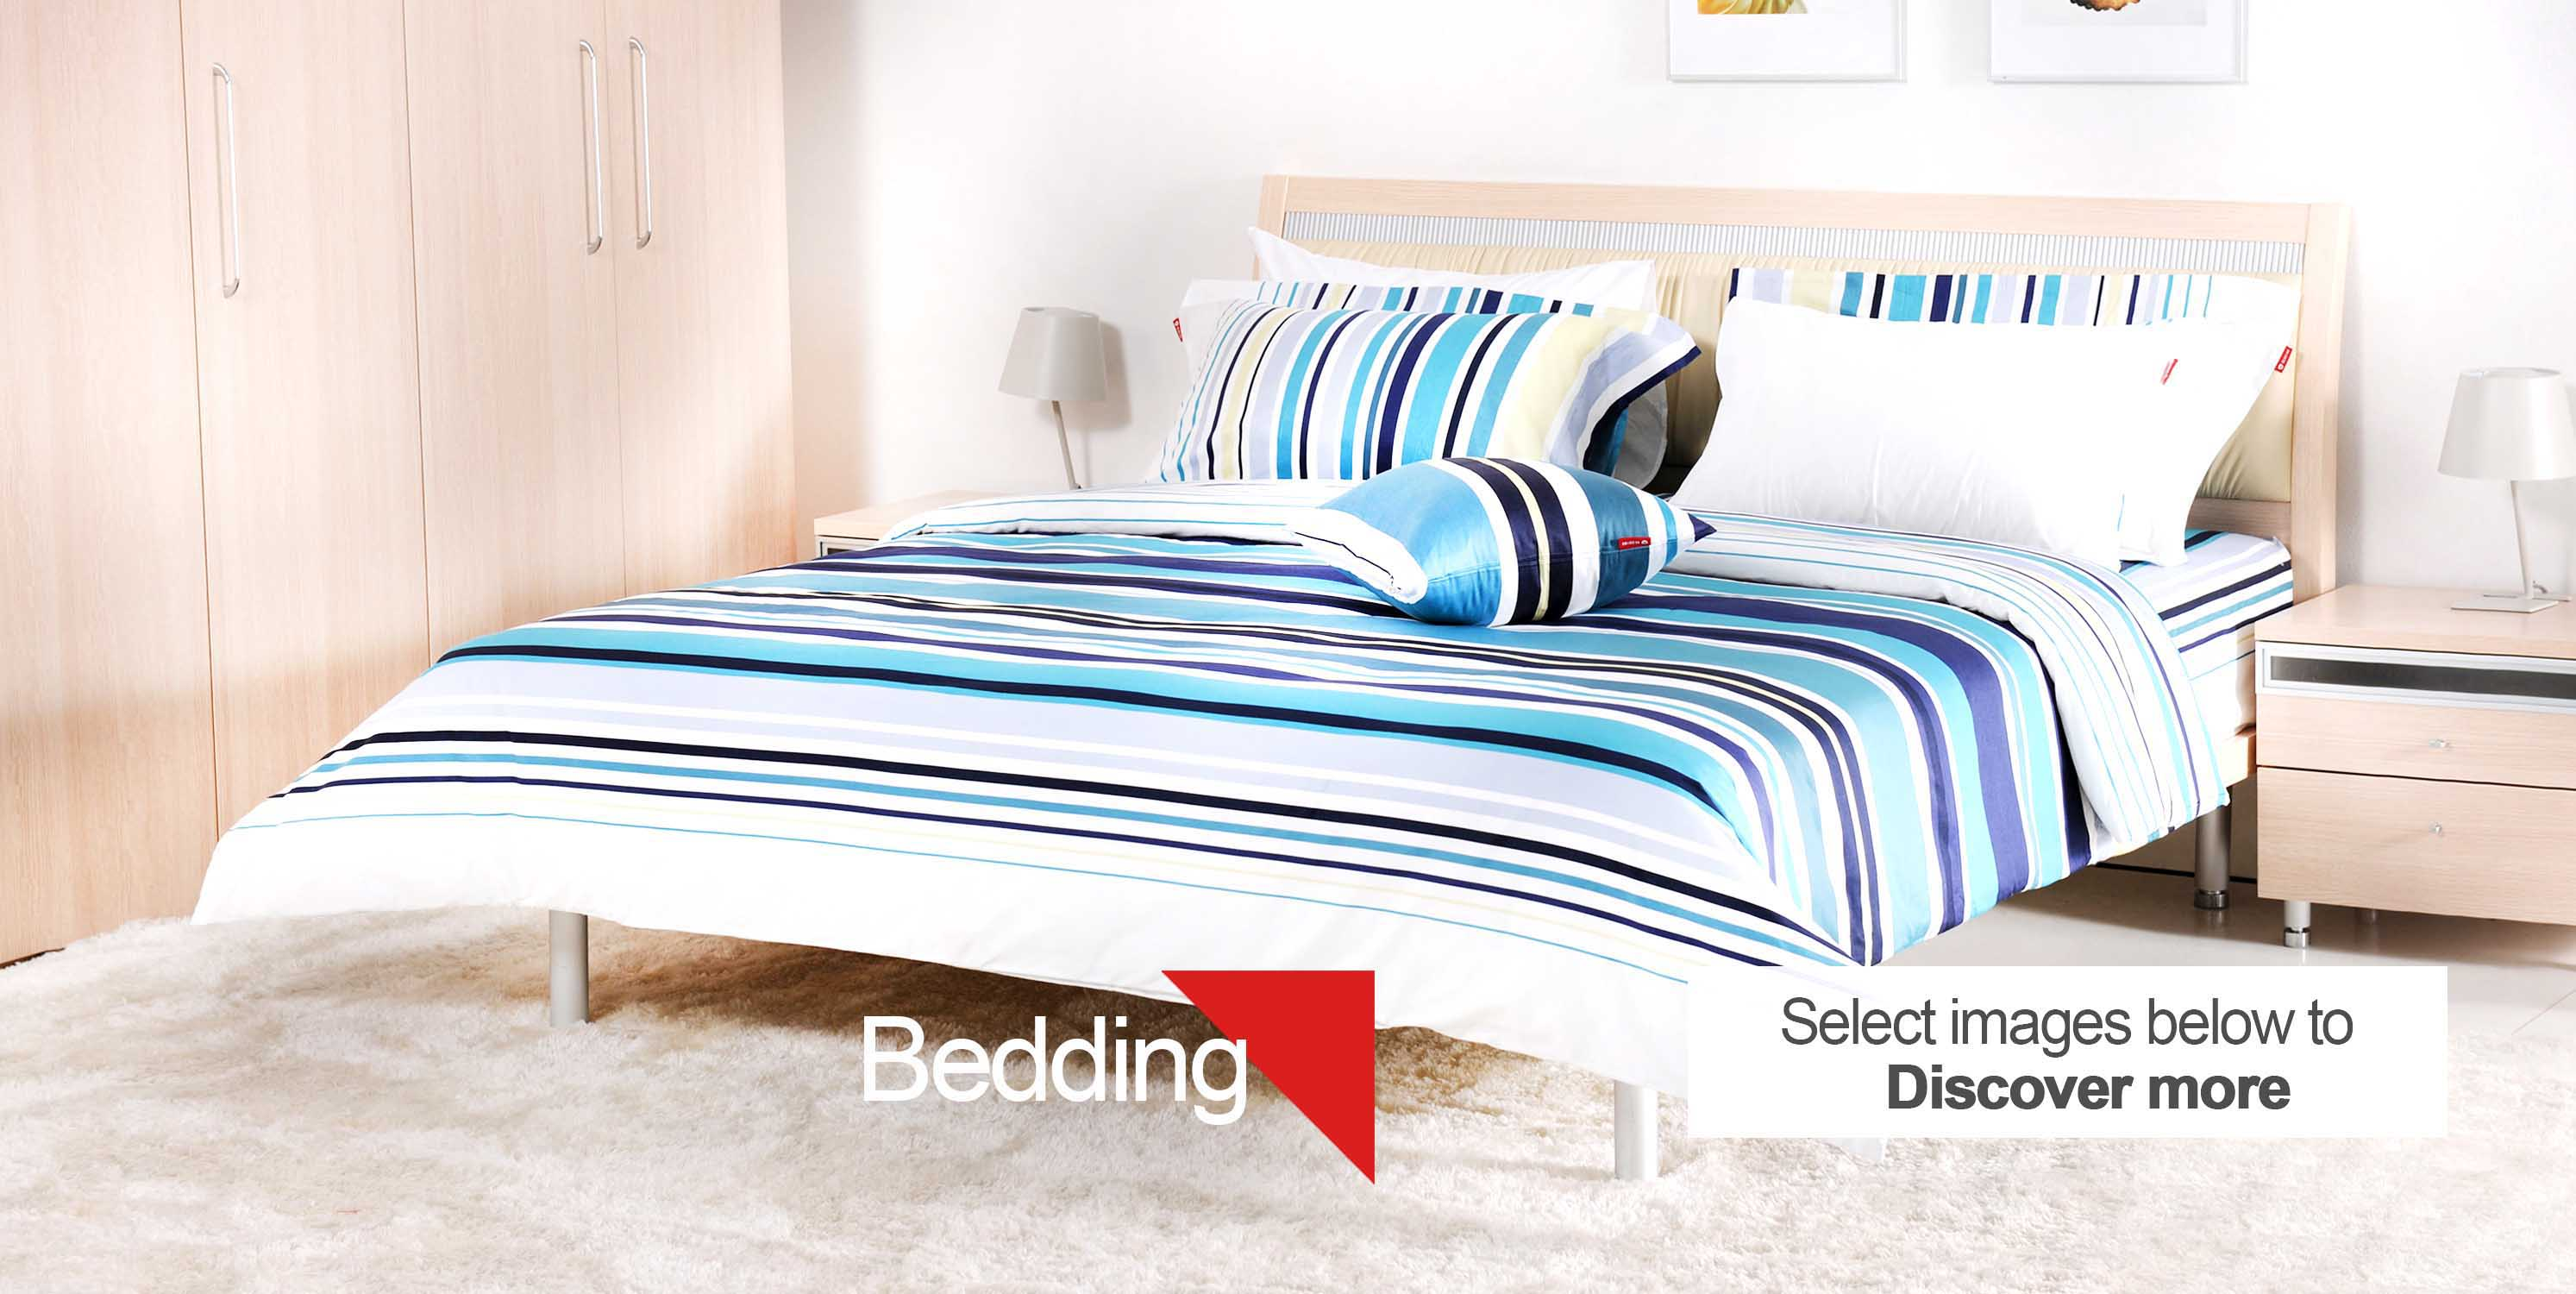 WIDE-LANDING-BEDDING-1